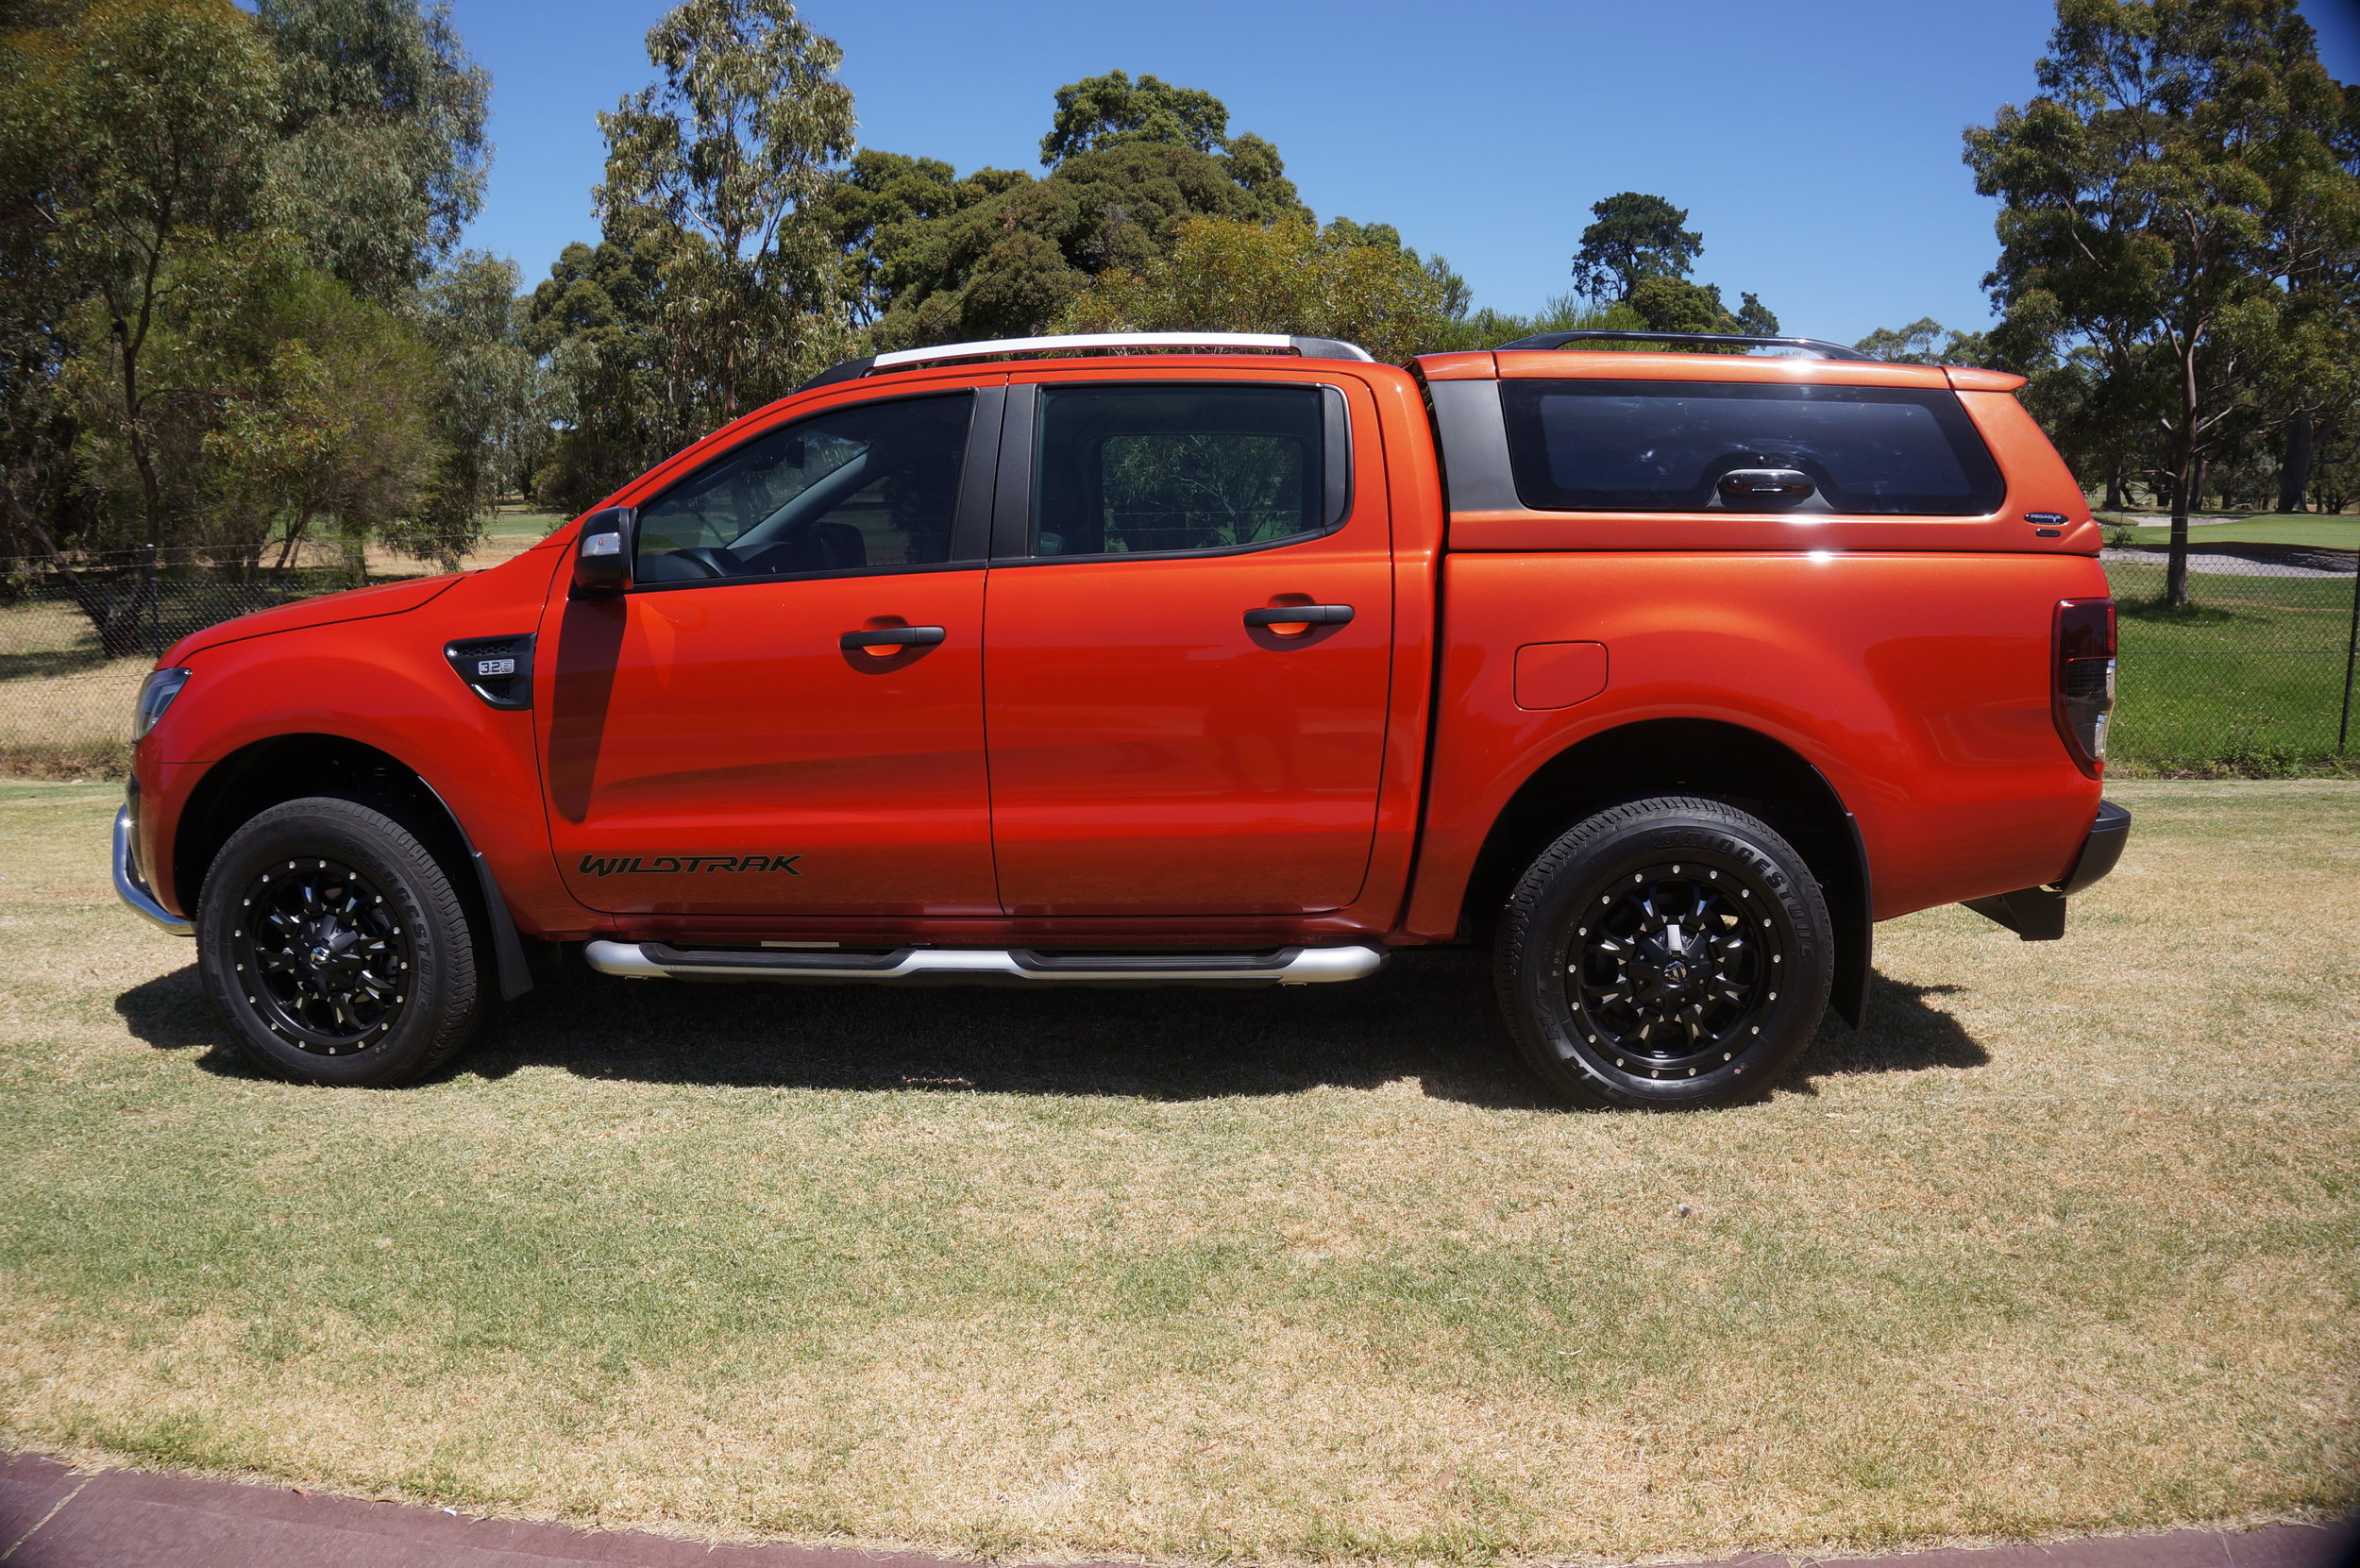 Ford Ranger Twentyten canopy Orange 9.jpg